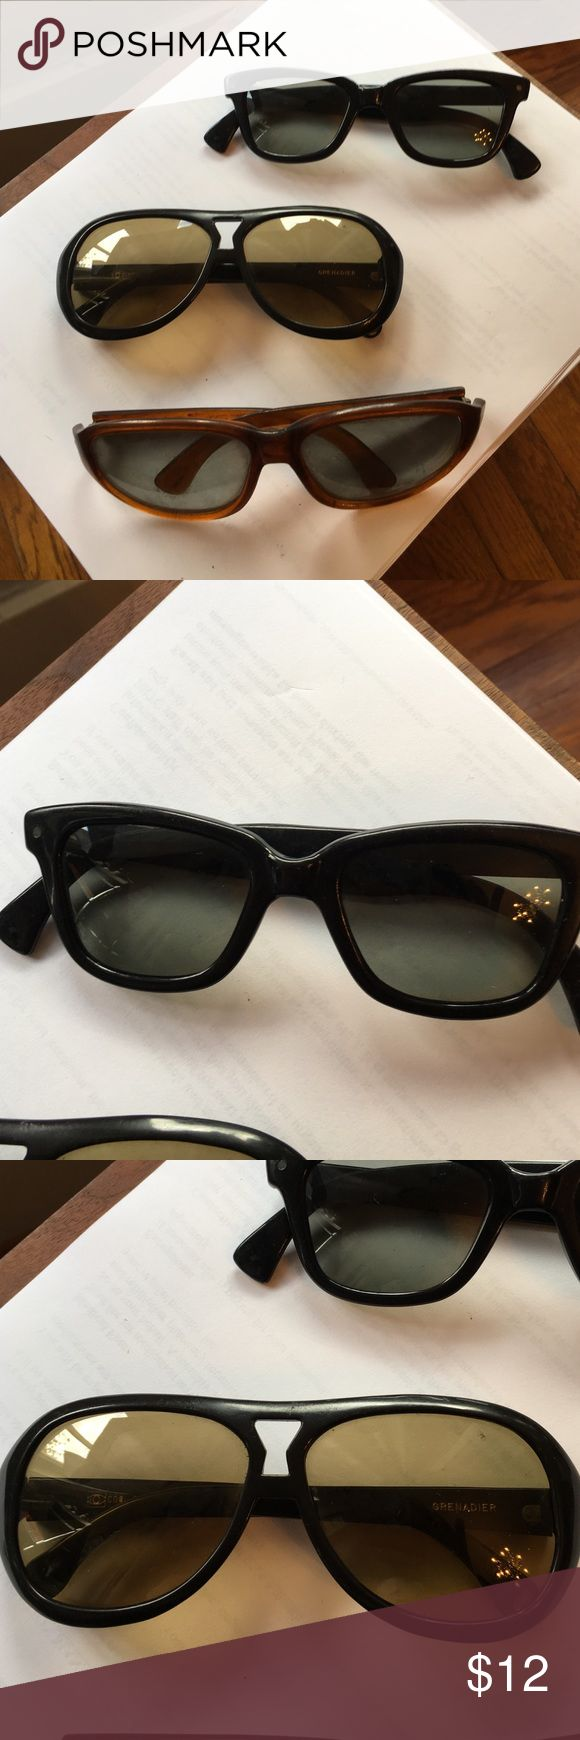 3 pairs ultramod super fly sunglasses Check out photos! Costume quality not high end vintage, but made as samples in the late 60s-early 70s. Great shapes and strong lines. Perfect your Halloween costume!! Accessories Sunglasses